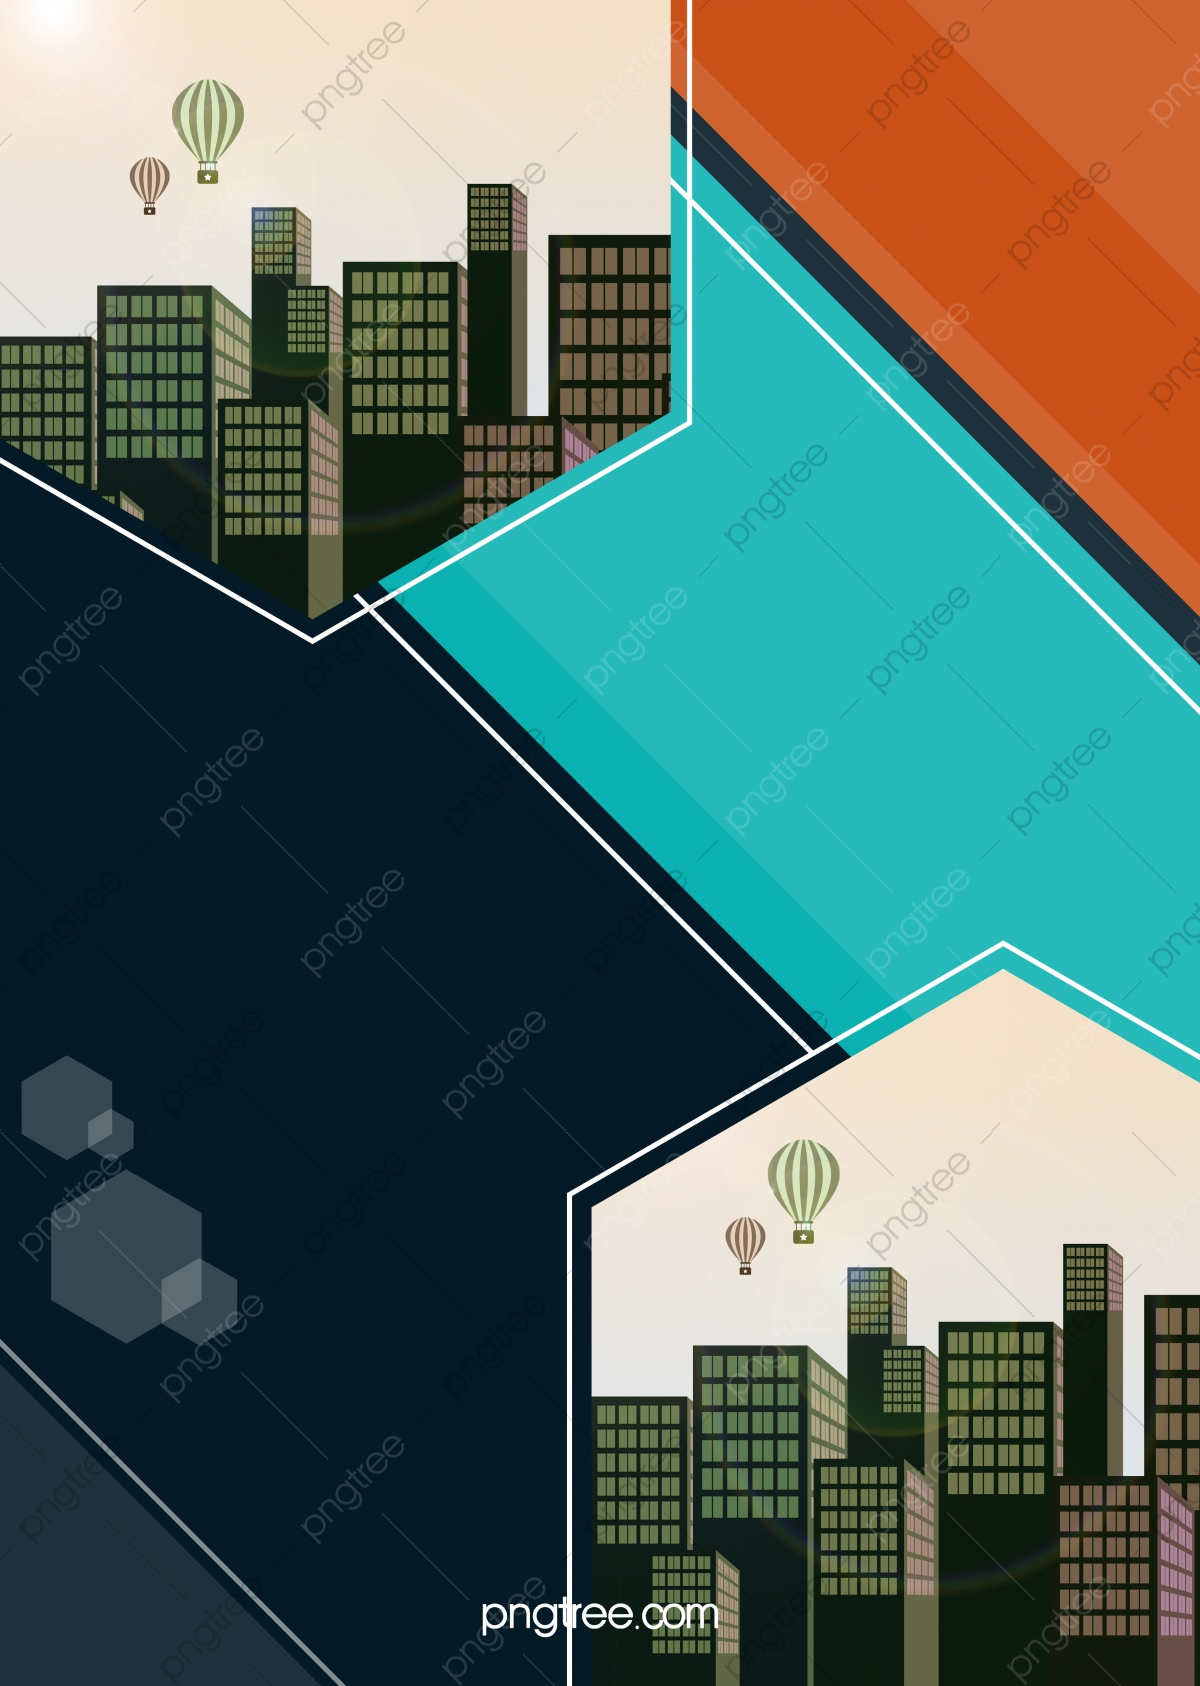 Cover Background Photos, Vectors and PSD Files for Free Download ...